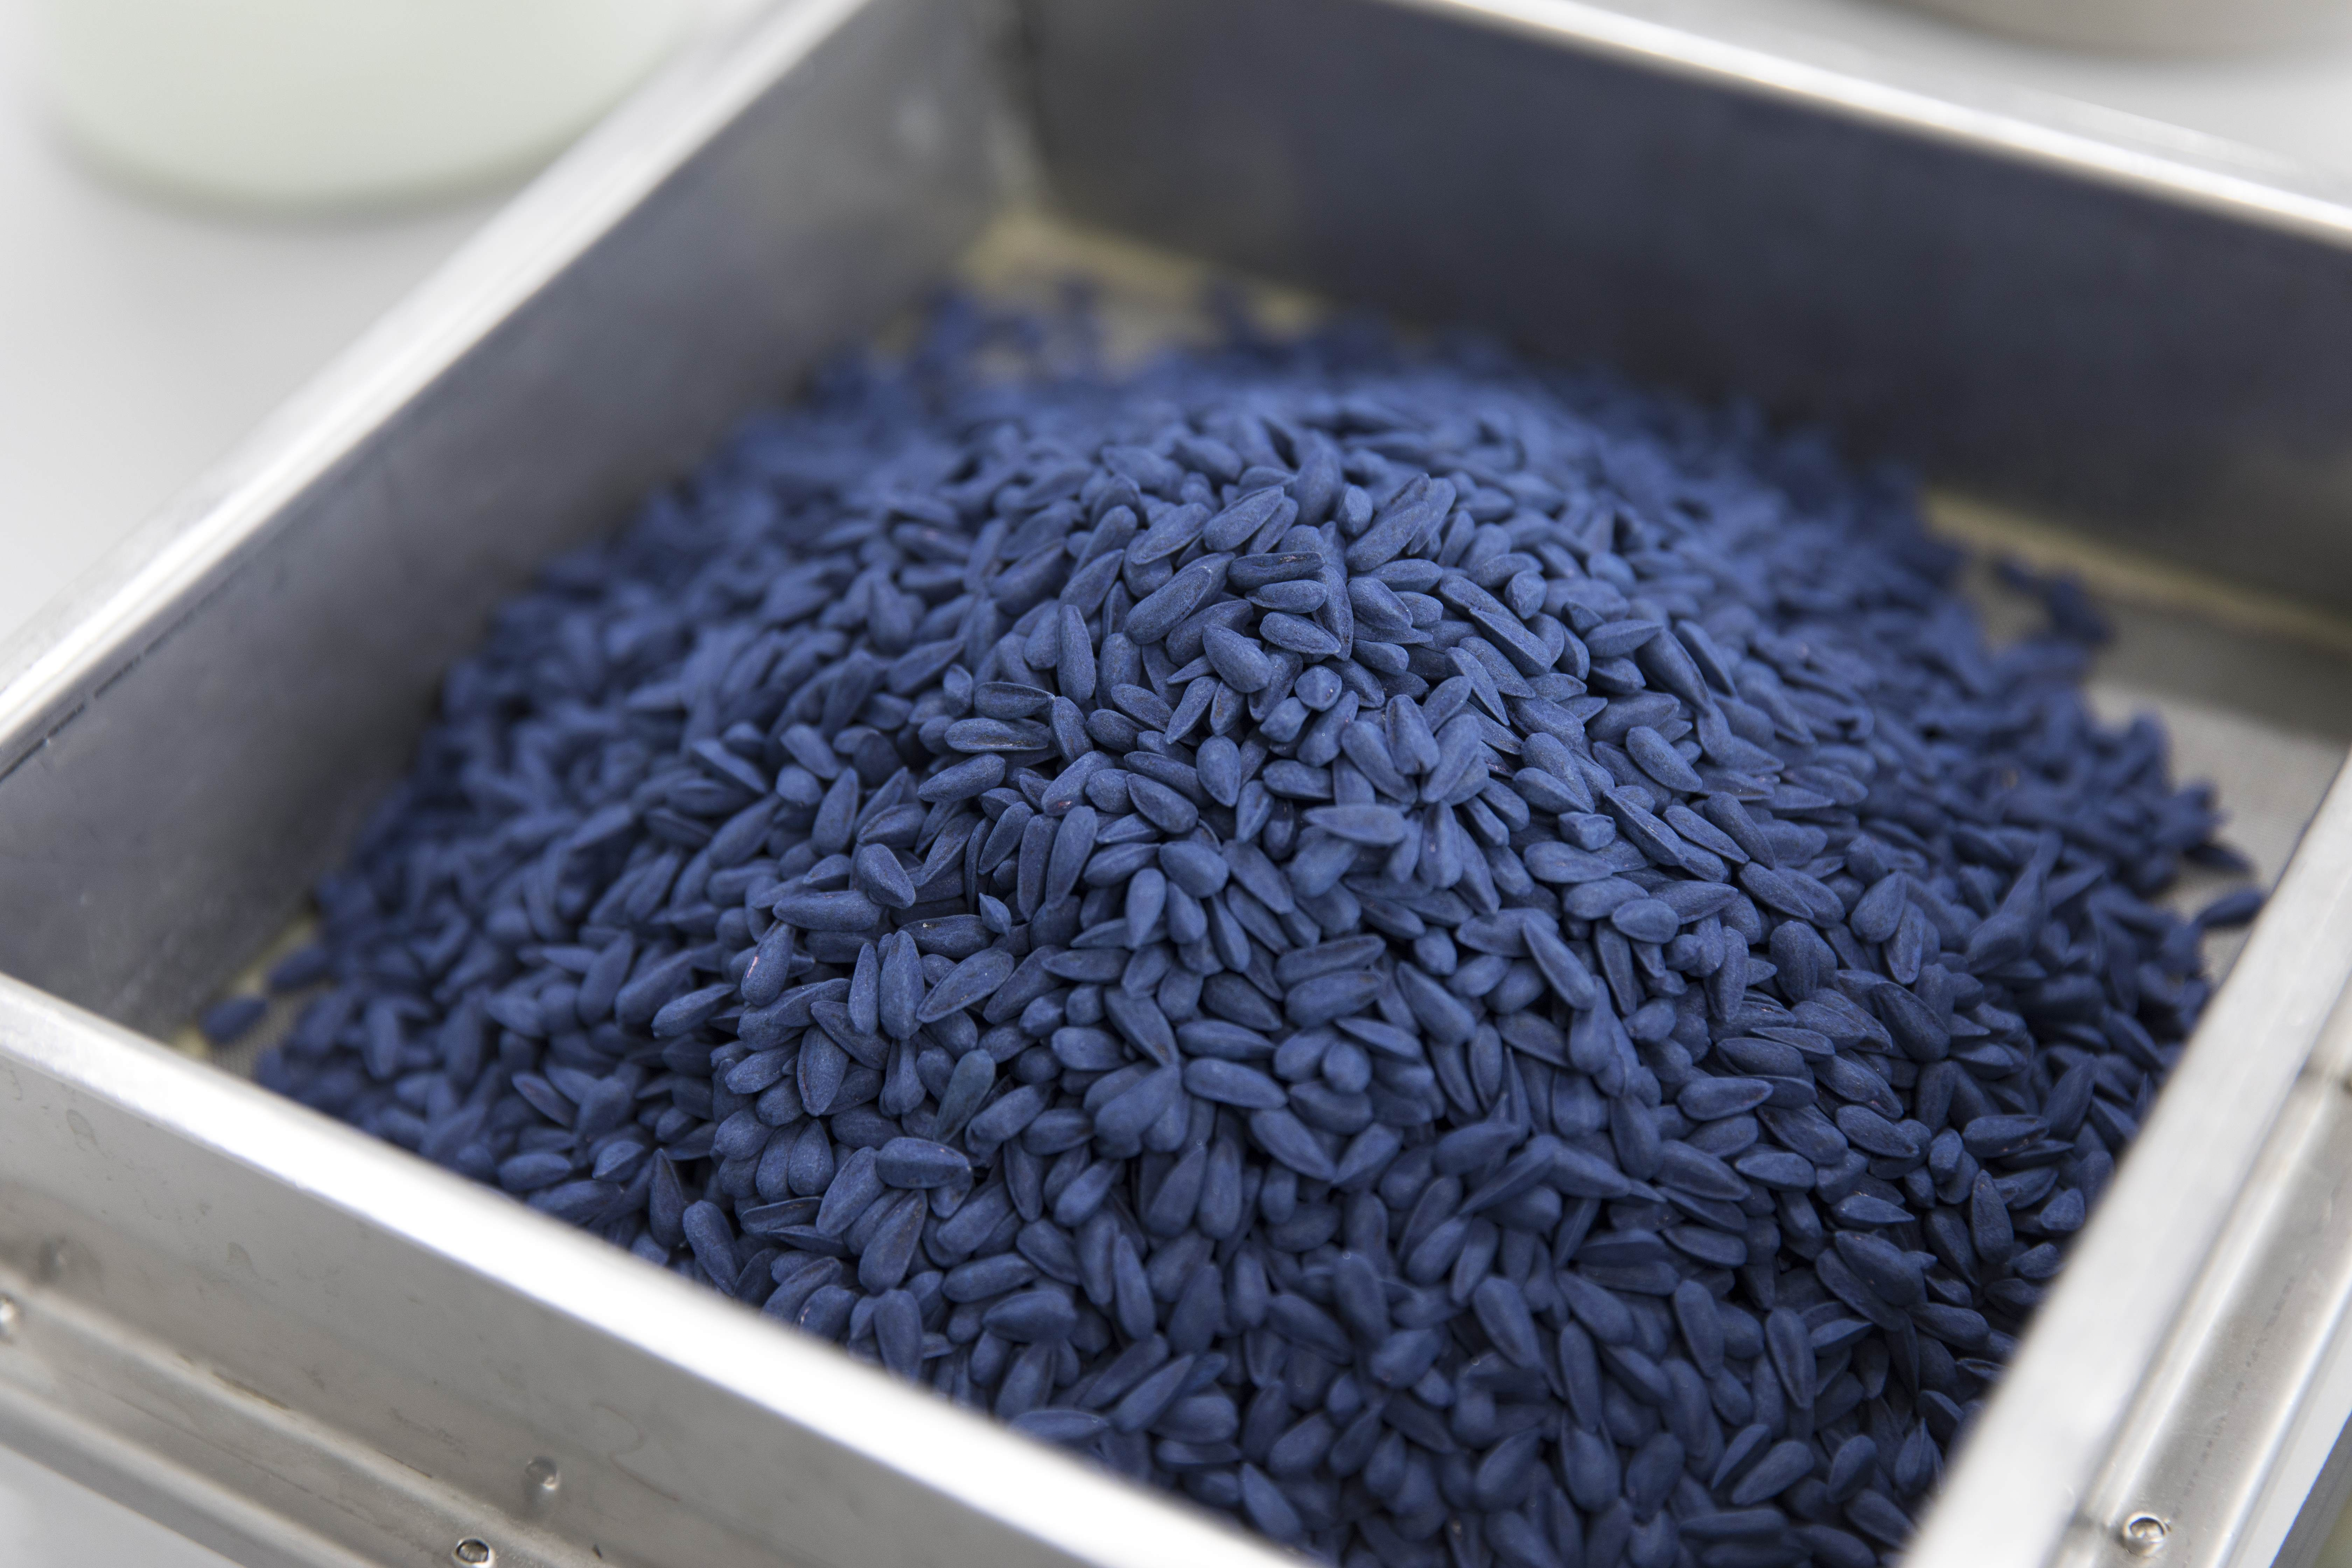 Encrusted blue sunflower seed